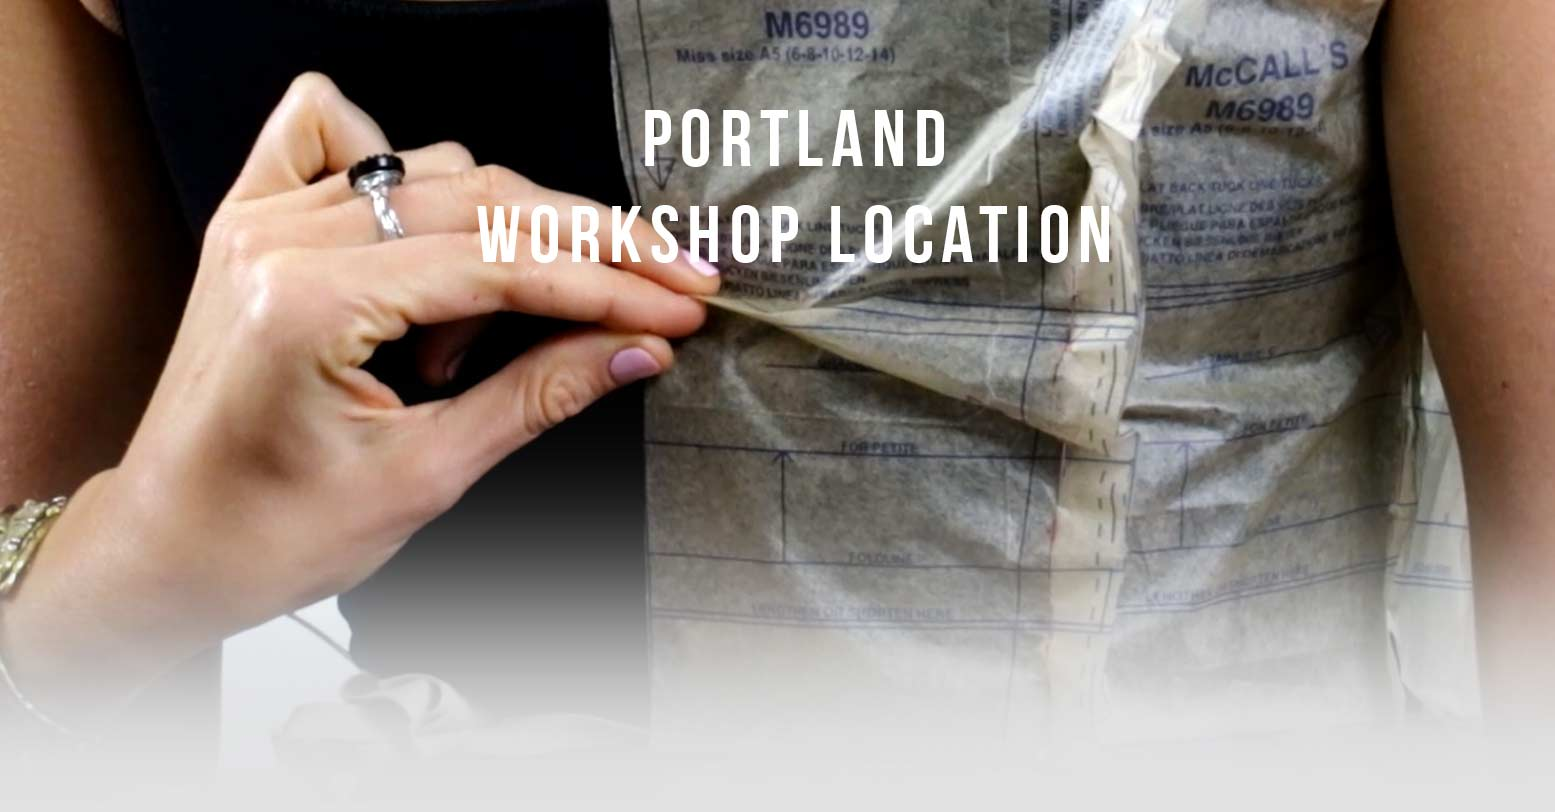 learn to sew portland